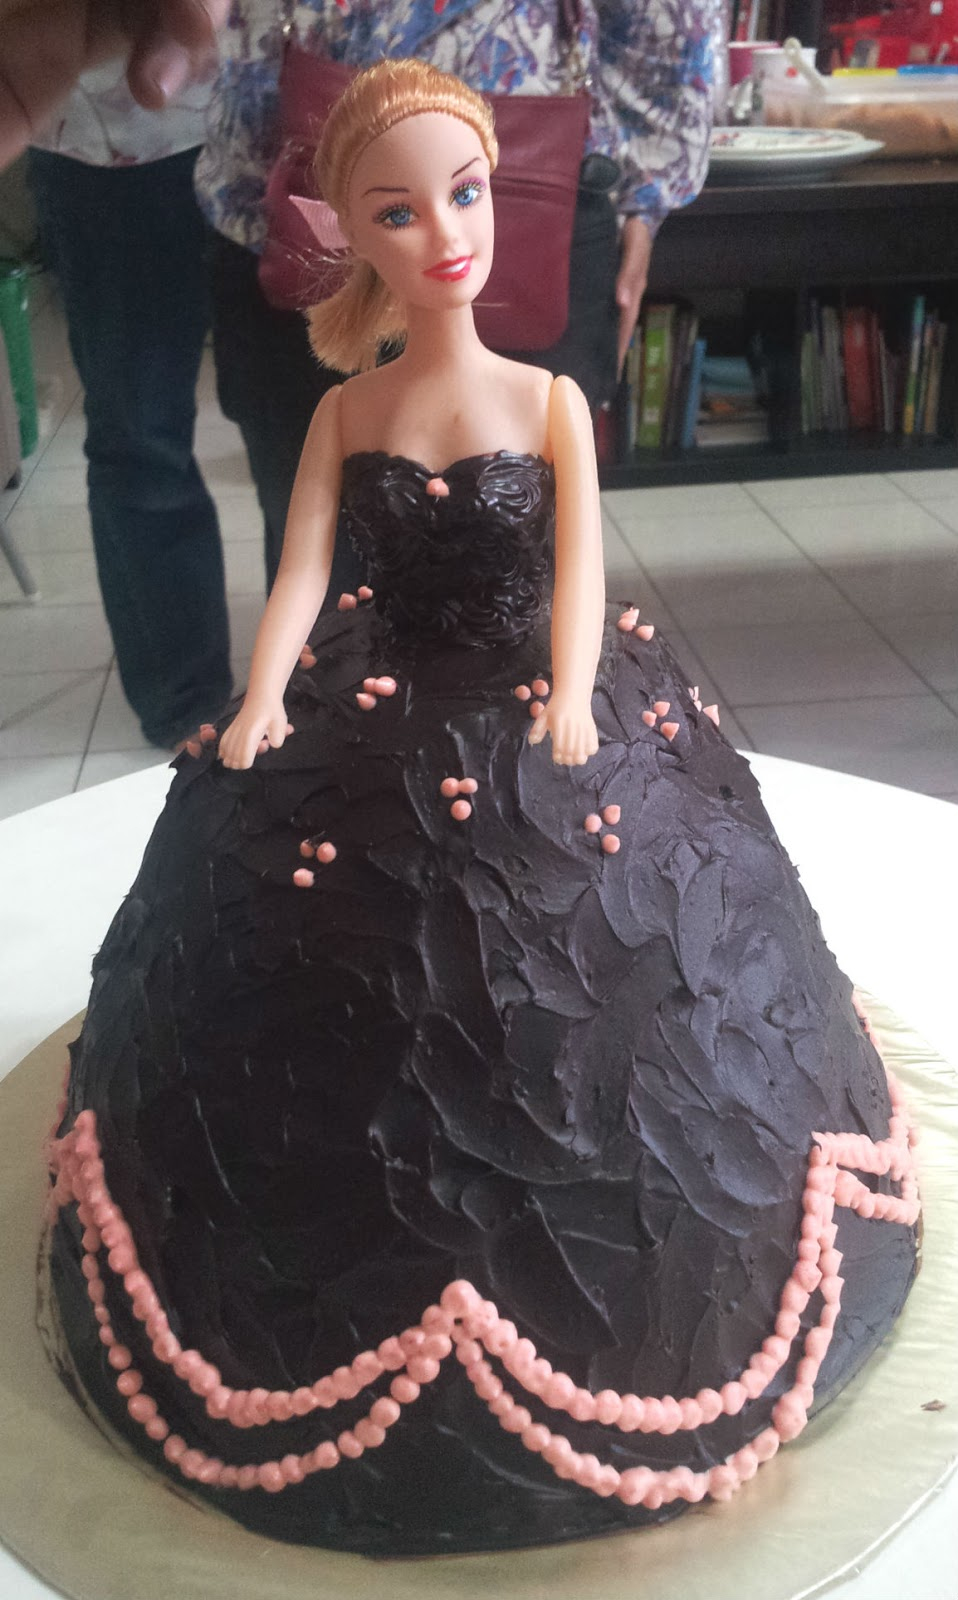 Made By Shas 1st Attempt At Making A Doll Cake